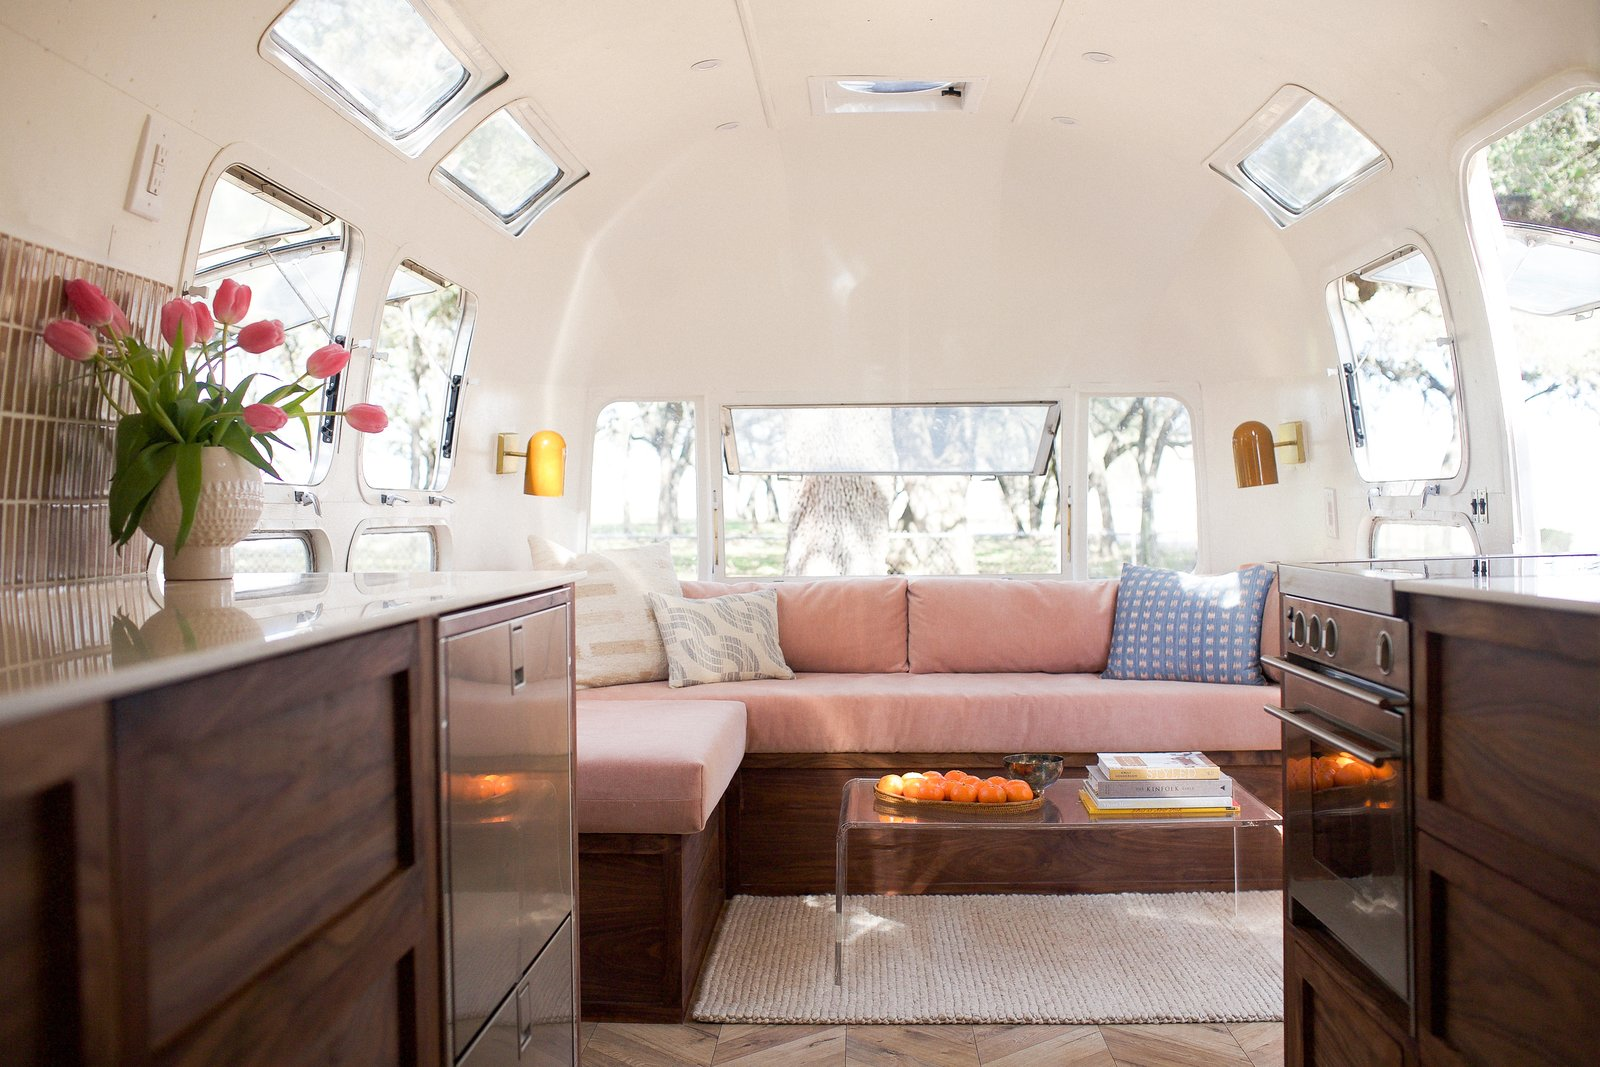 This Chic Camper Will Make You Want To Be An Airstream